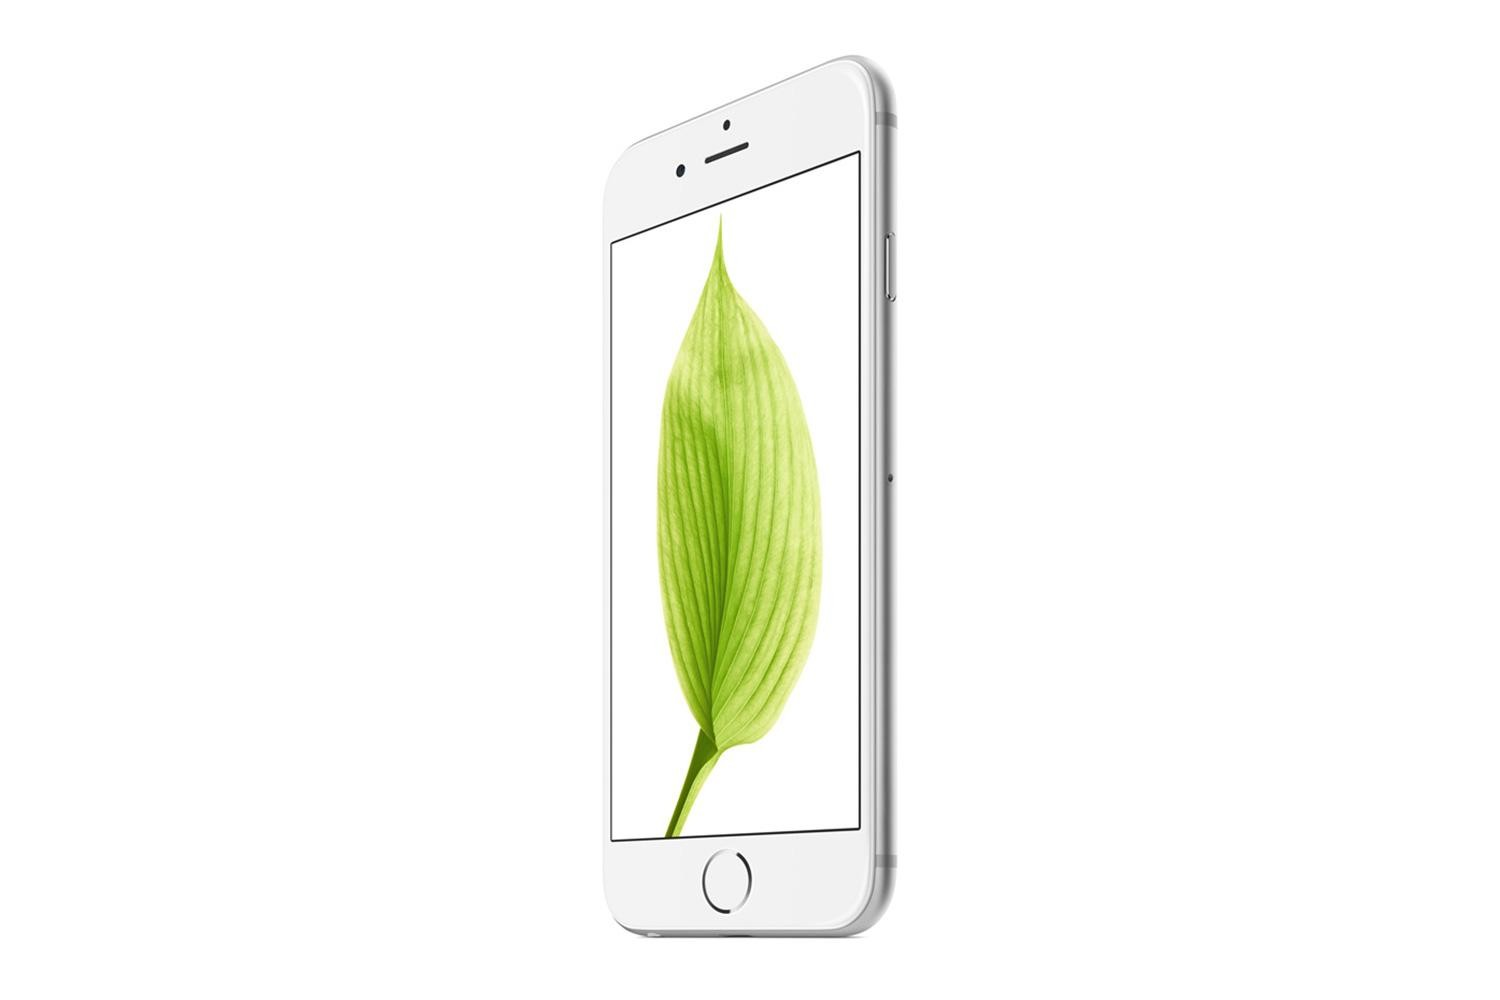 iphone 6 air features release rumors front left